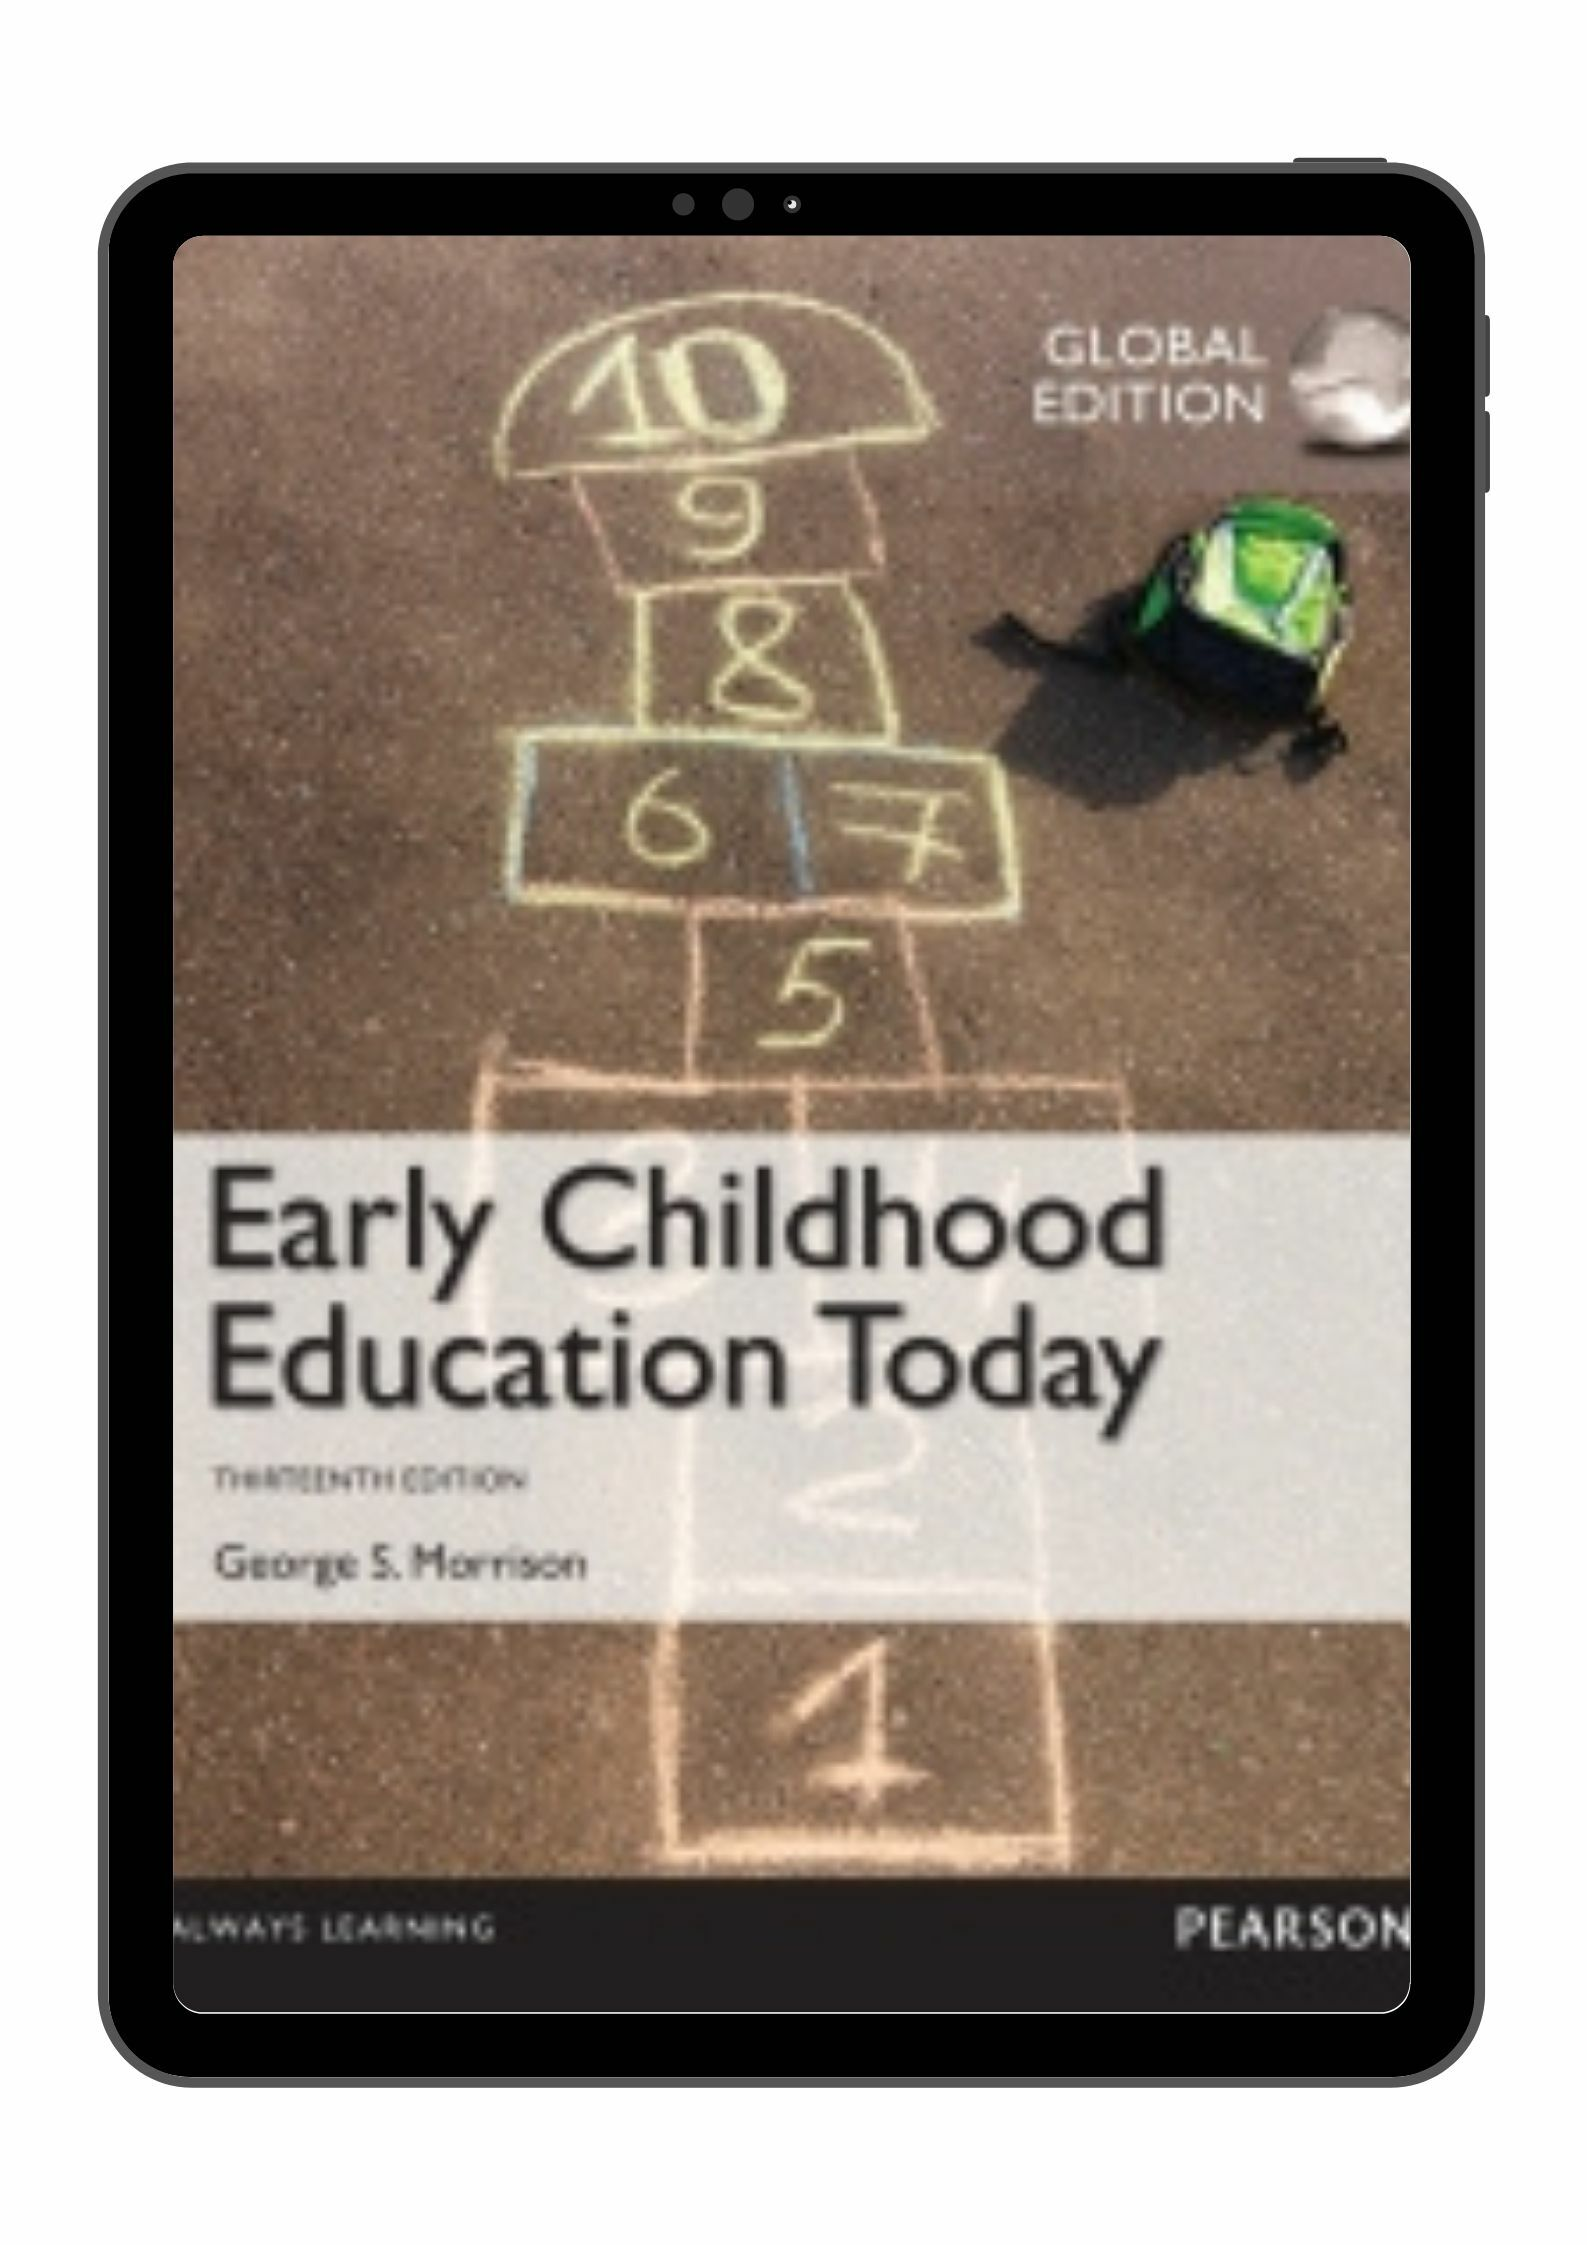 (EBook) Early Childhood Education Today 13E by George Morrison 9781292066349